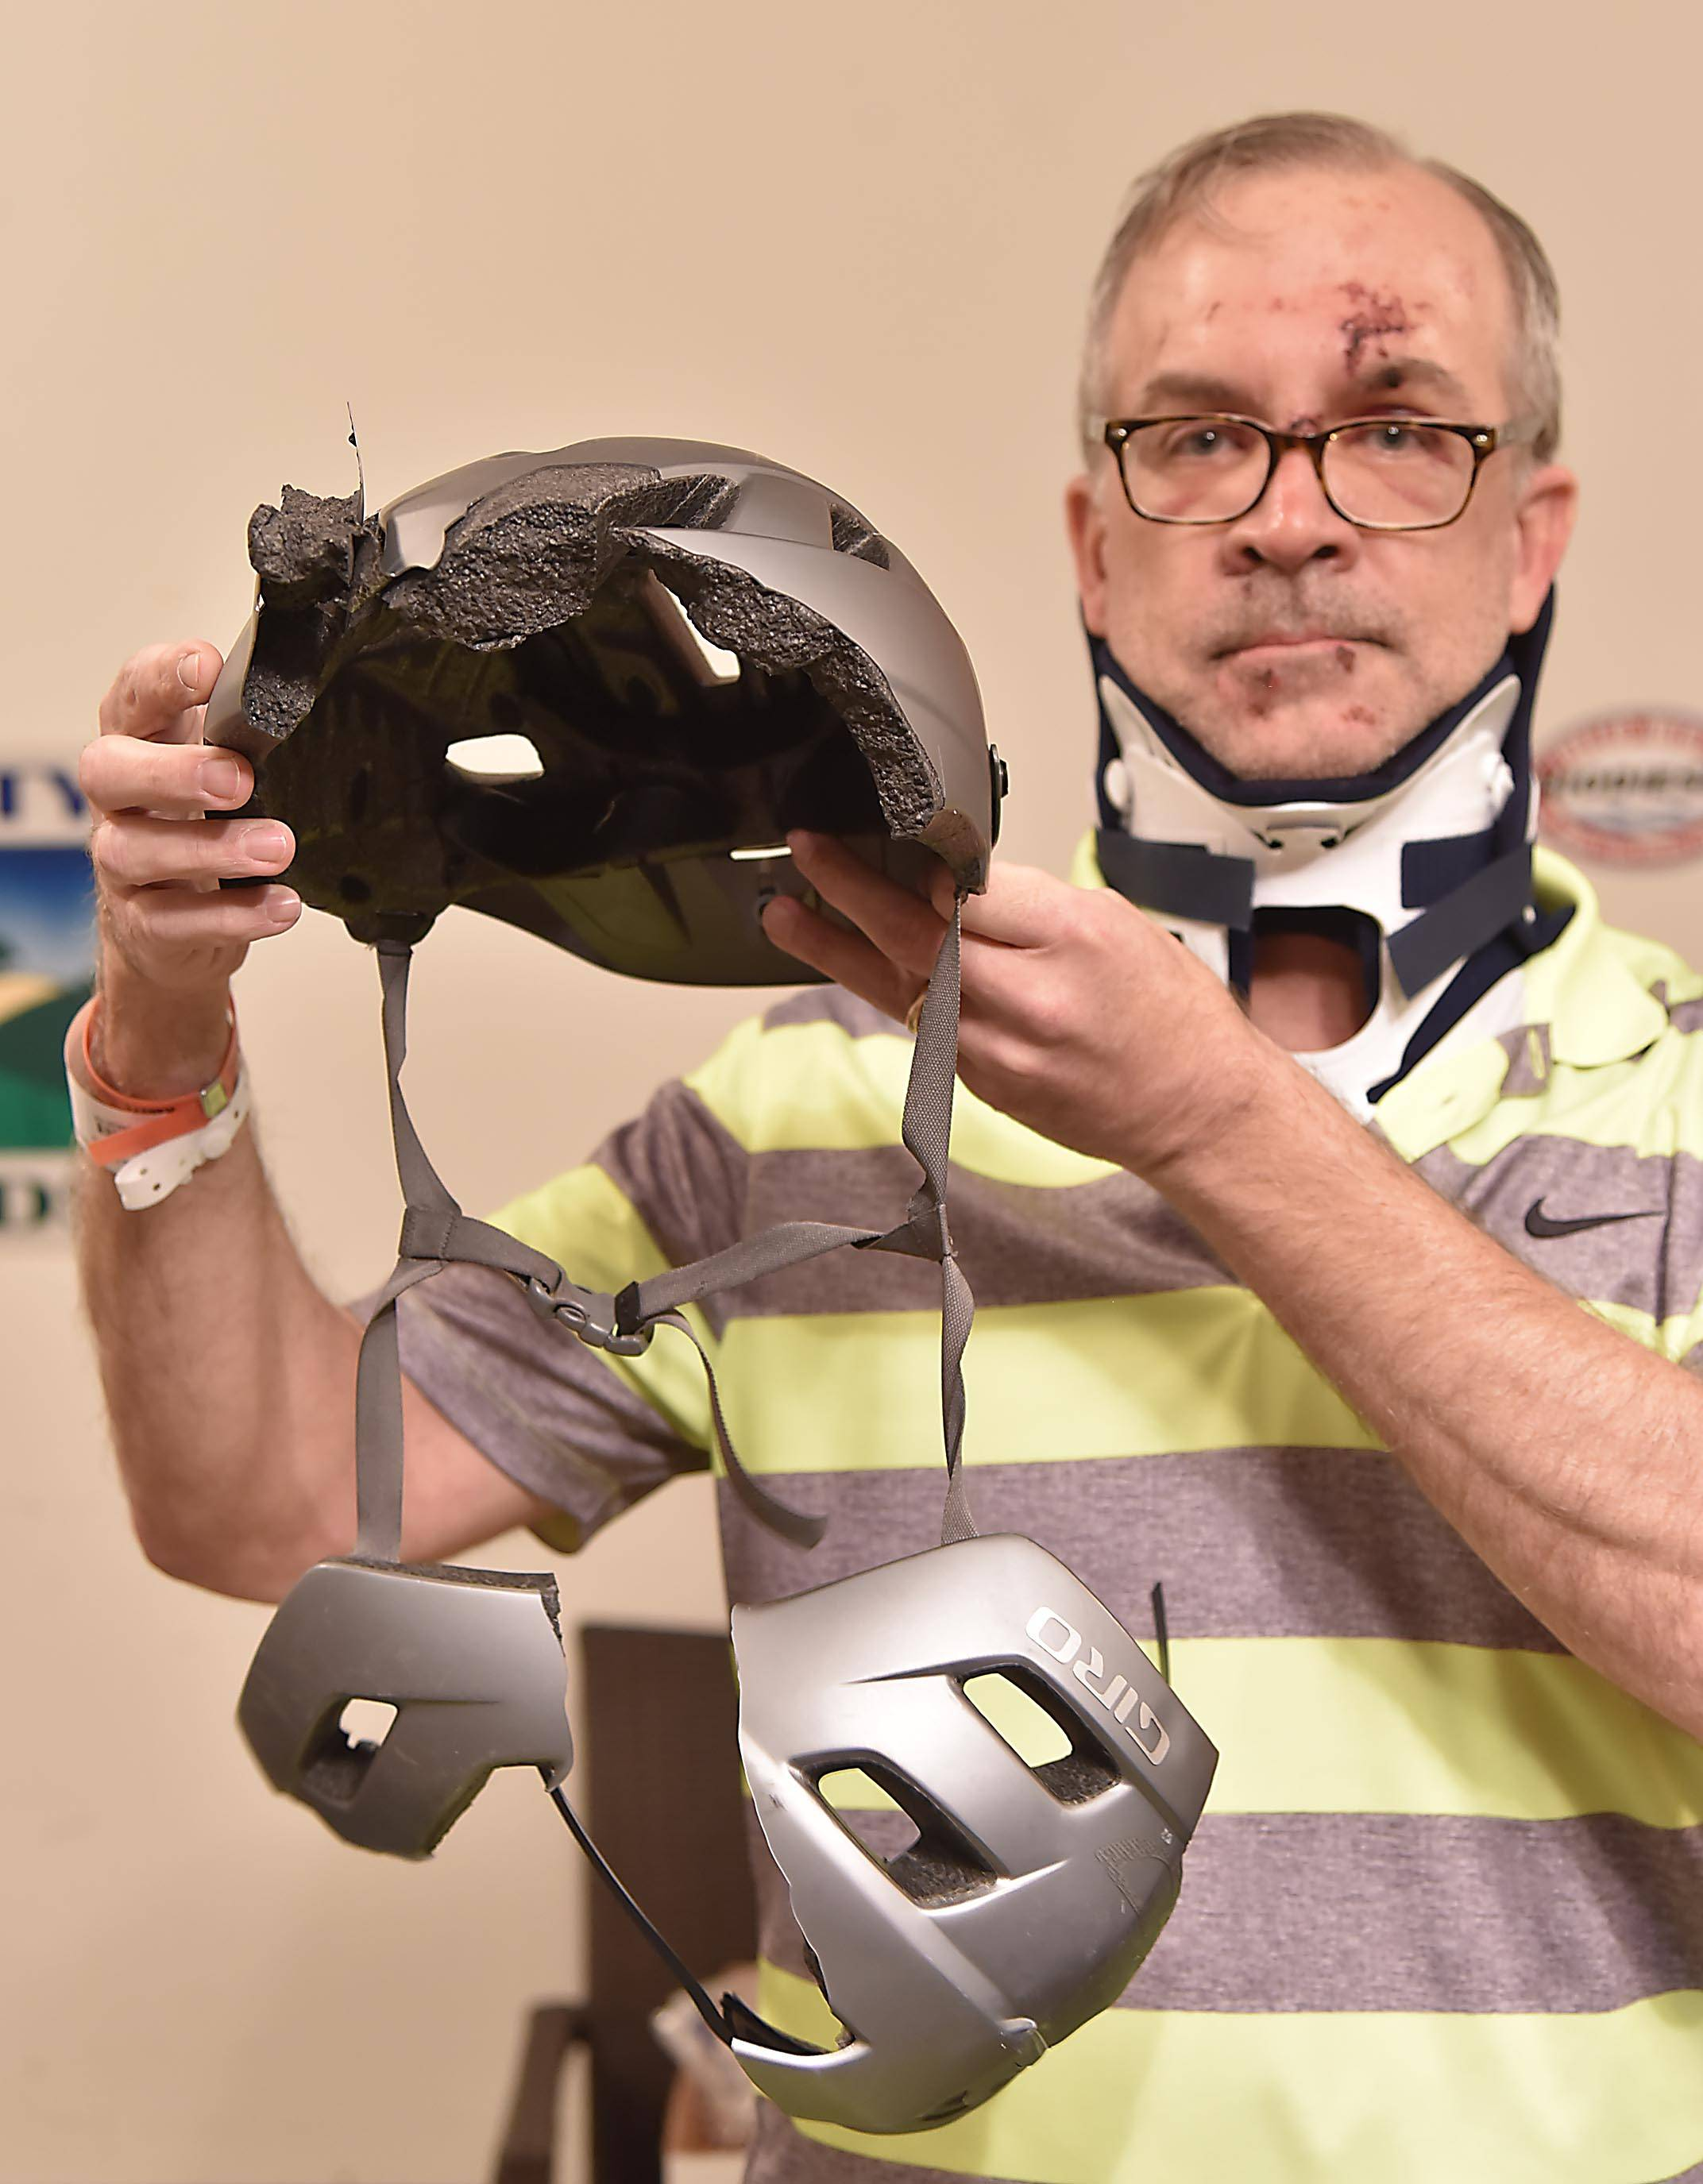 Kane County Transportation Director Carl Schoedel's helmet split into pieces when the bicycle he was riding was hit from behind by a passing car Tuesday. Despite the crash, Schoedel says he will continue to ride his bike.